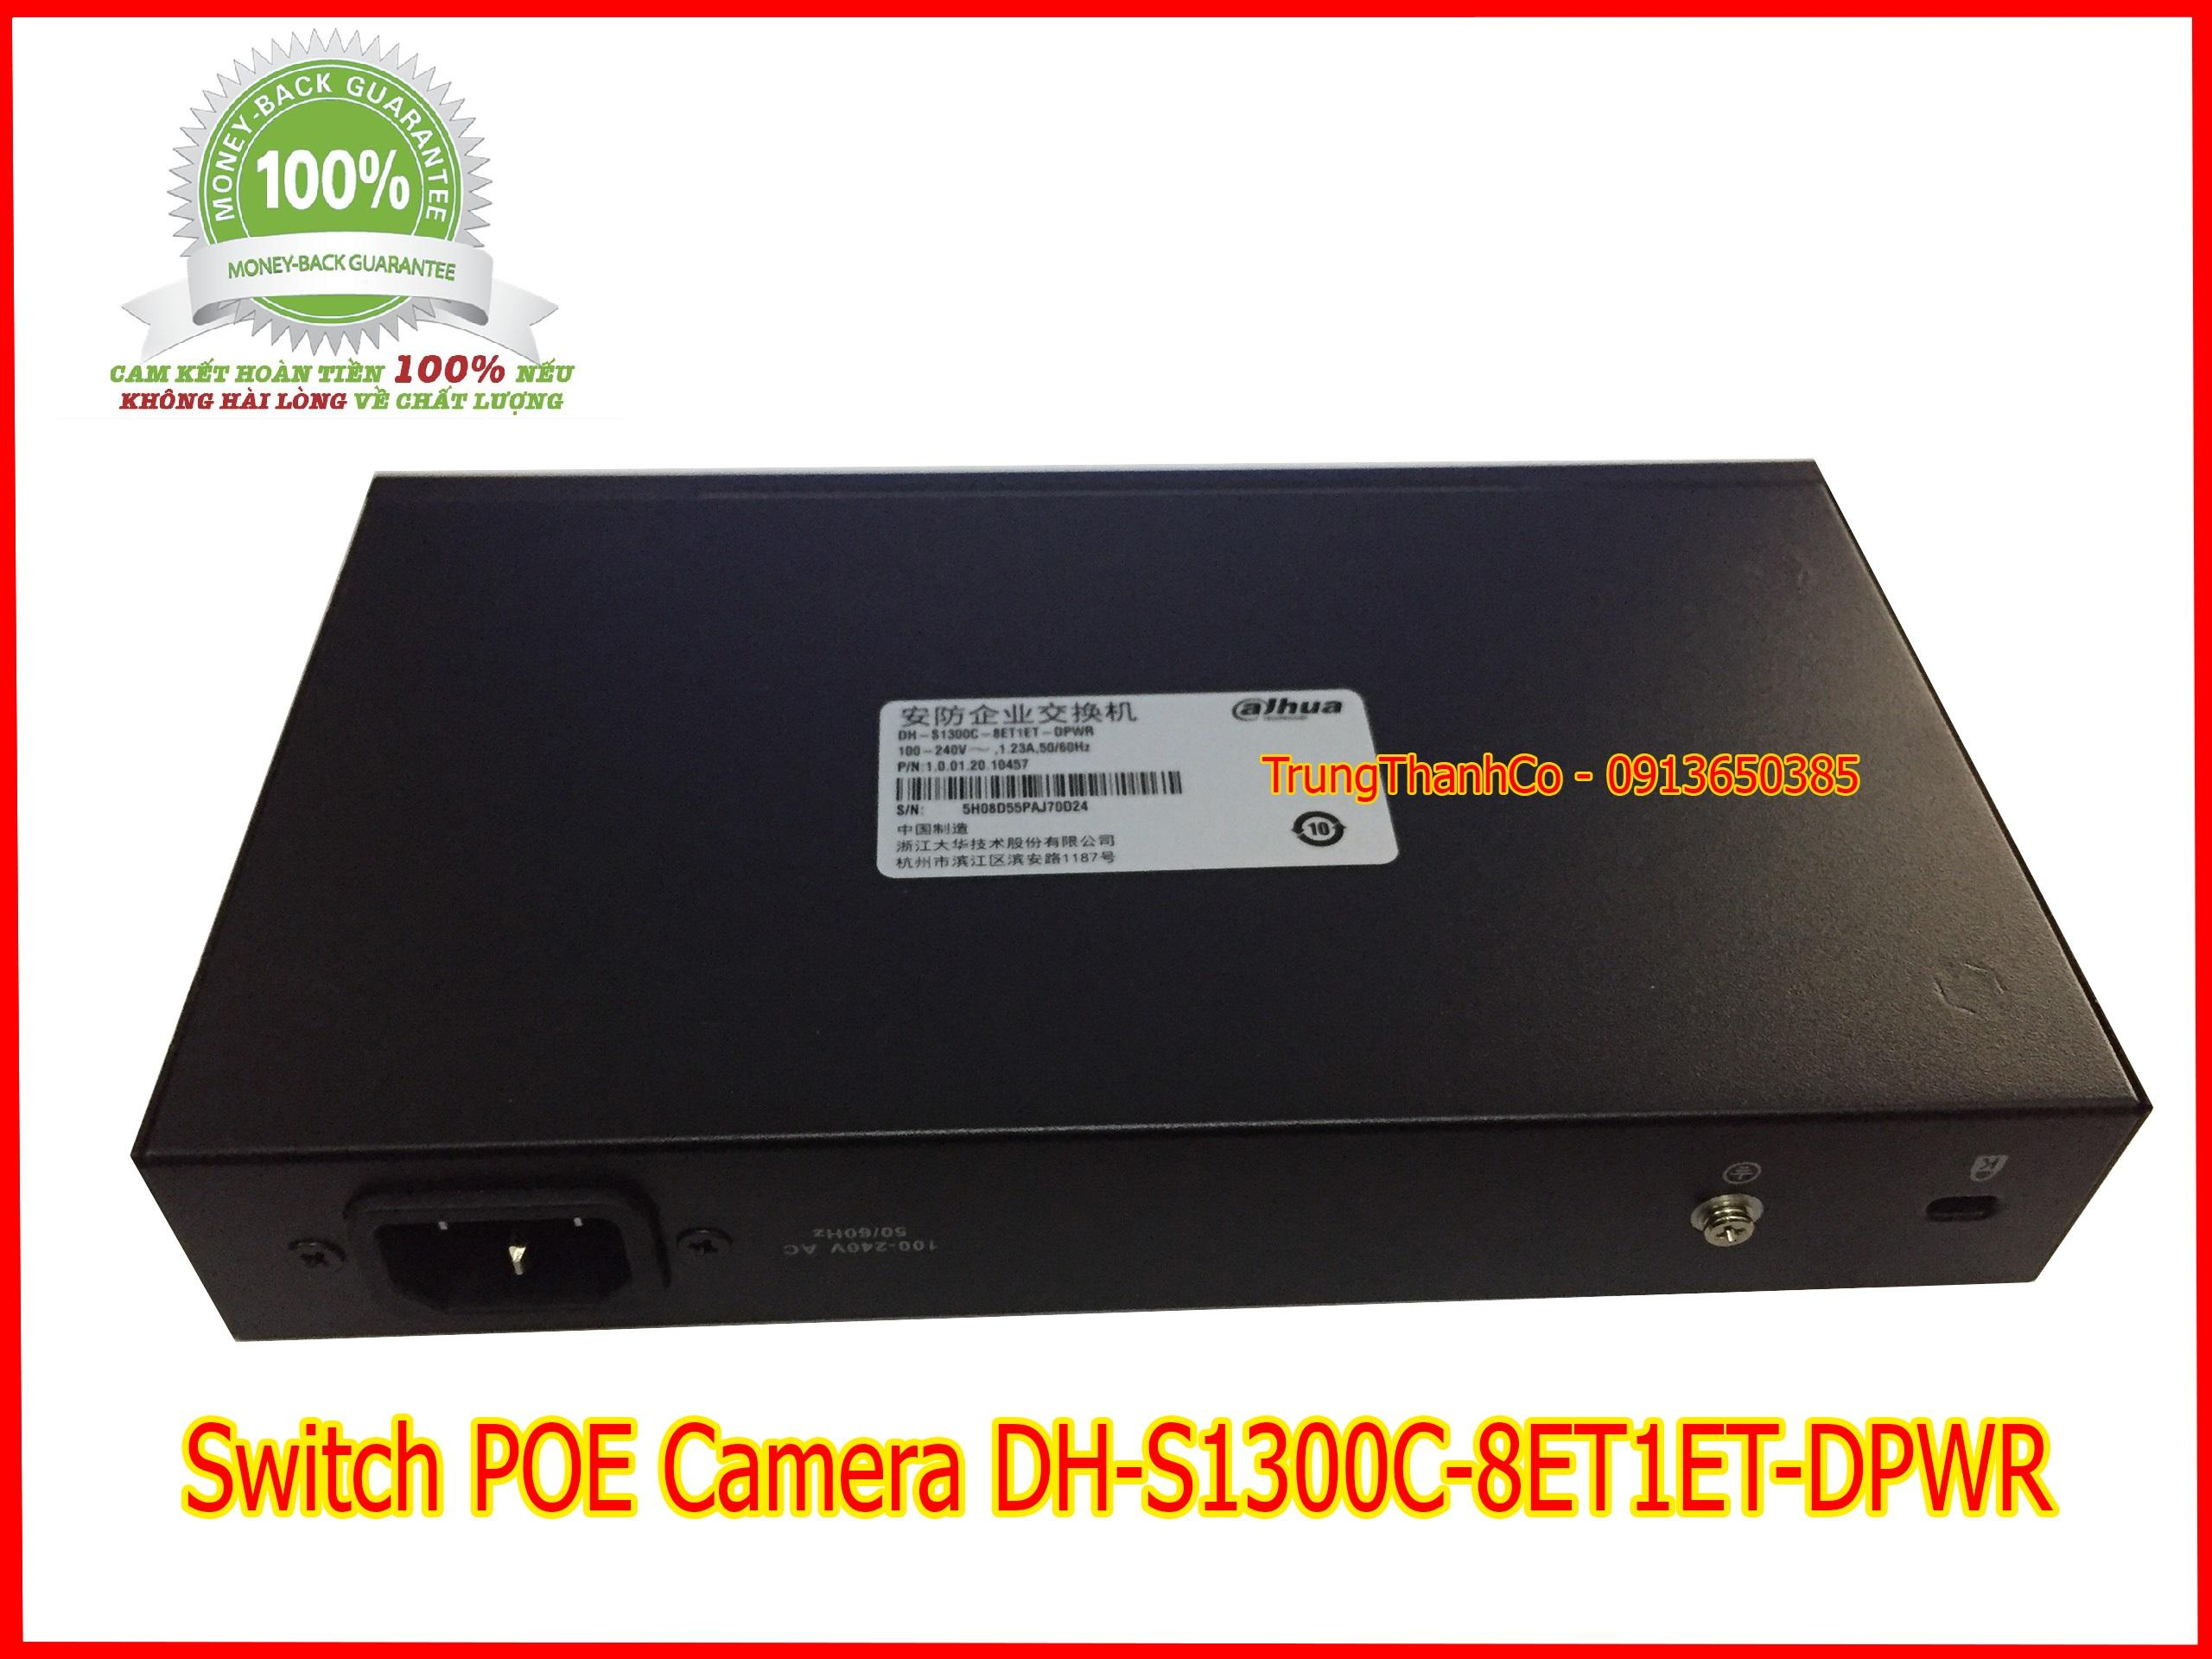 Giá Switch POE camera 8+1 DH-S1300C-8ET1ET-DPWR